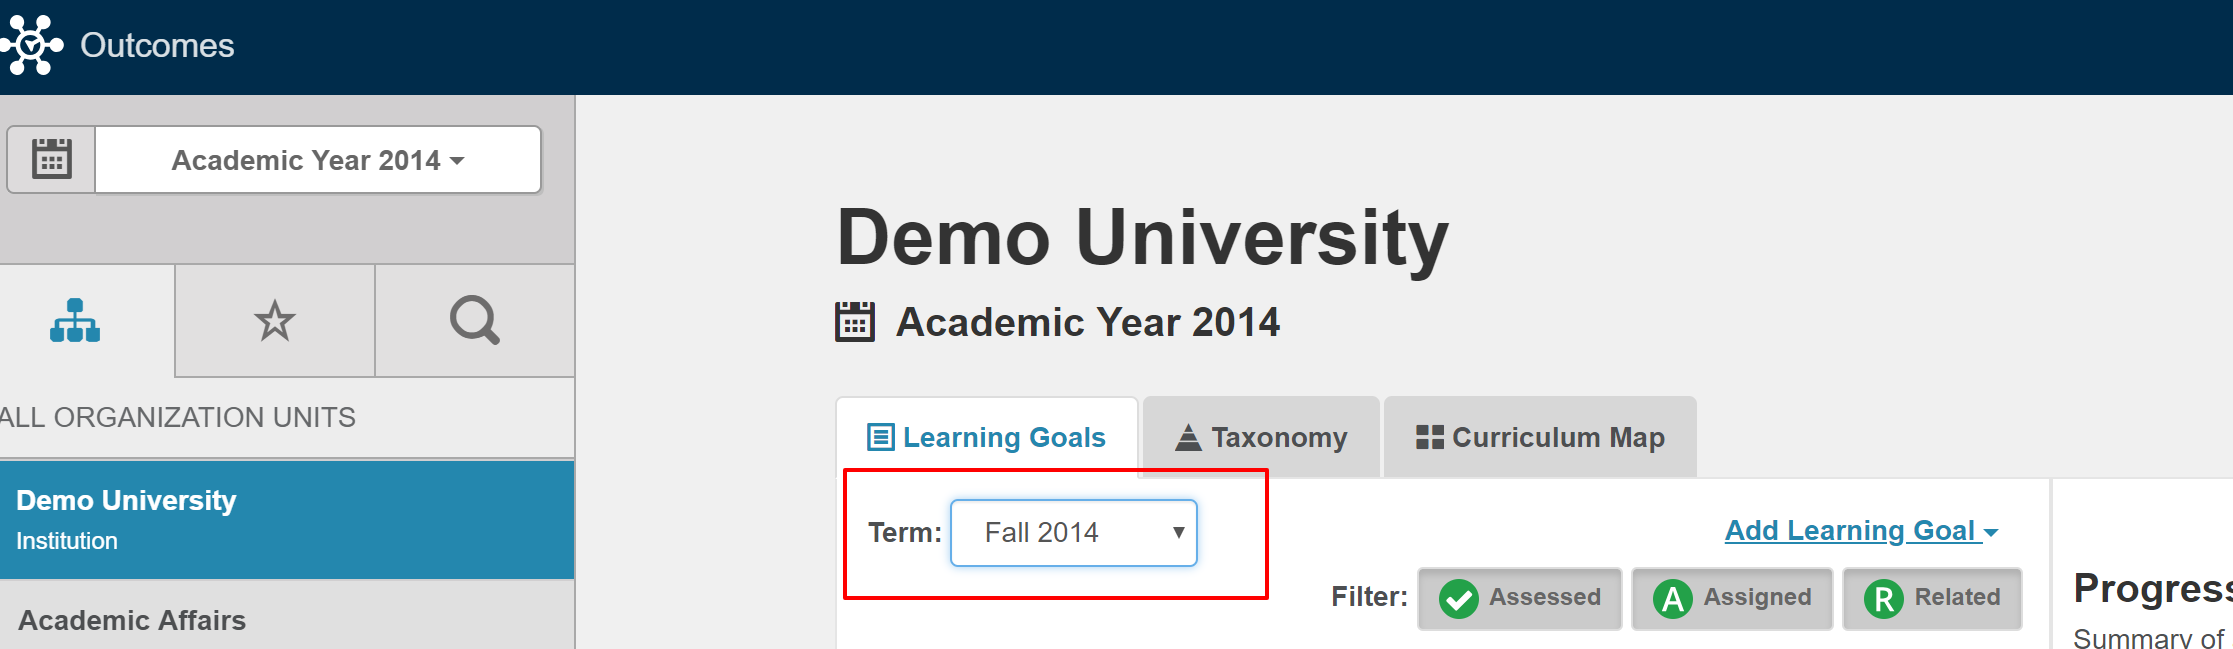 Academic_Terms_Dropdown_1.png